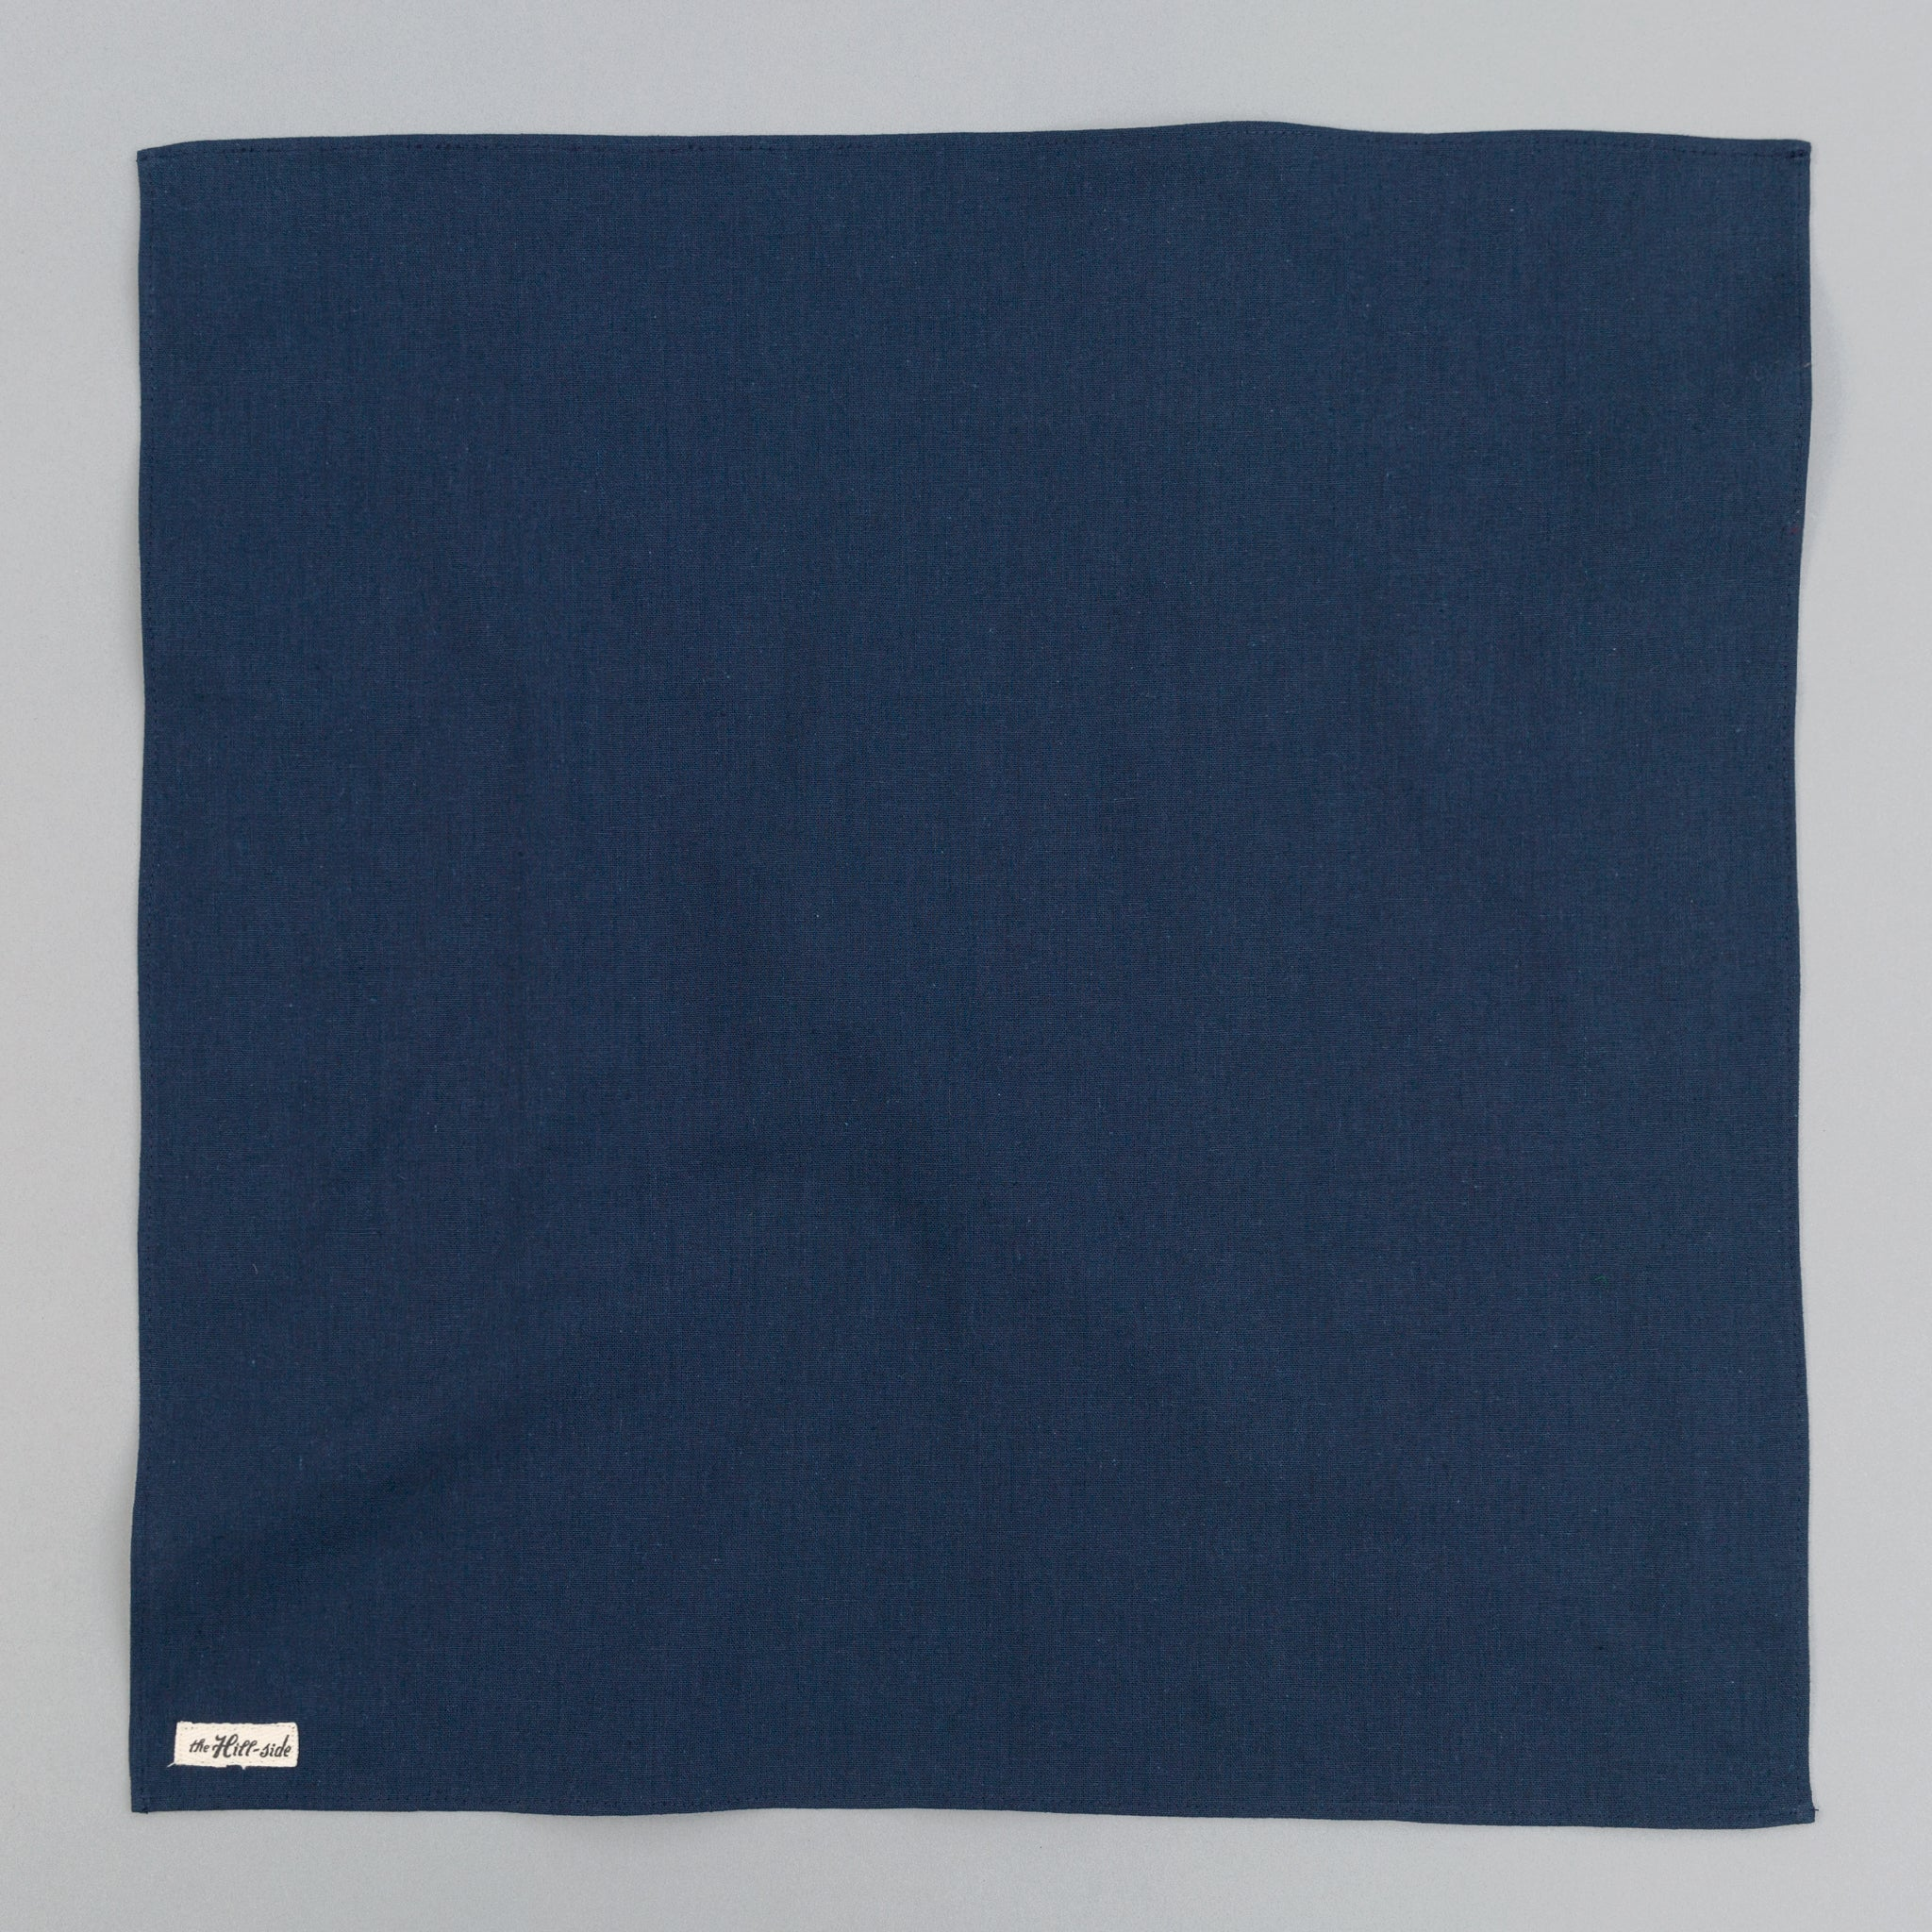 The Hill-Side - Linen / Cotton Oxford Bandana, Navy - BA1-418 - image 1